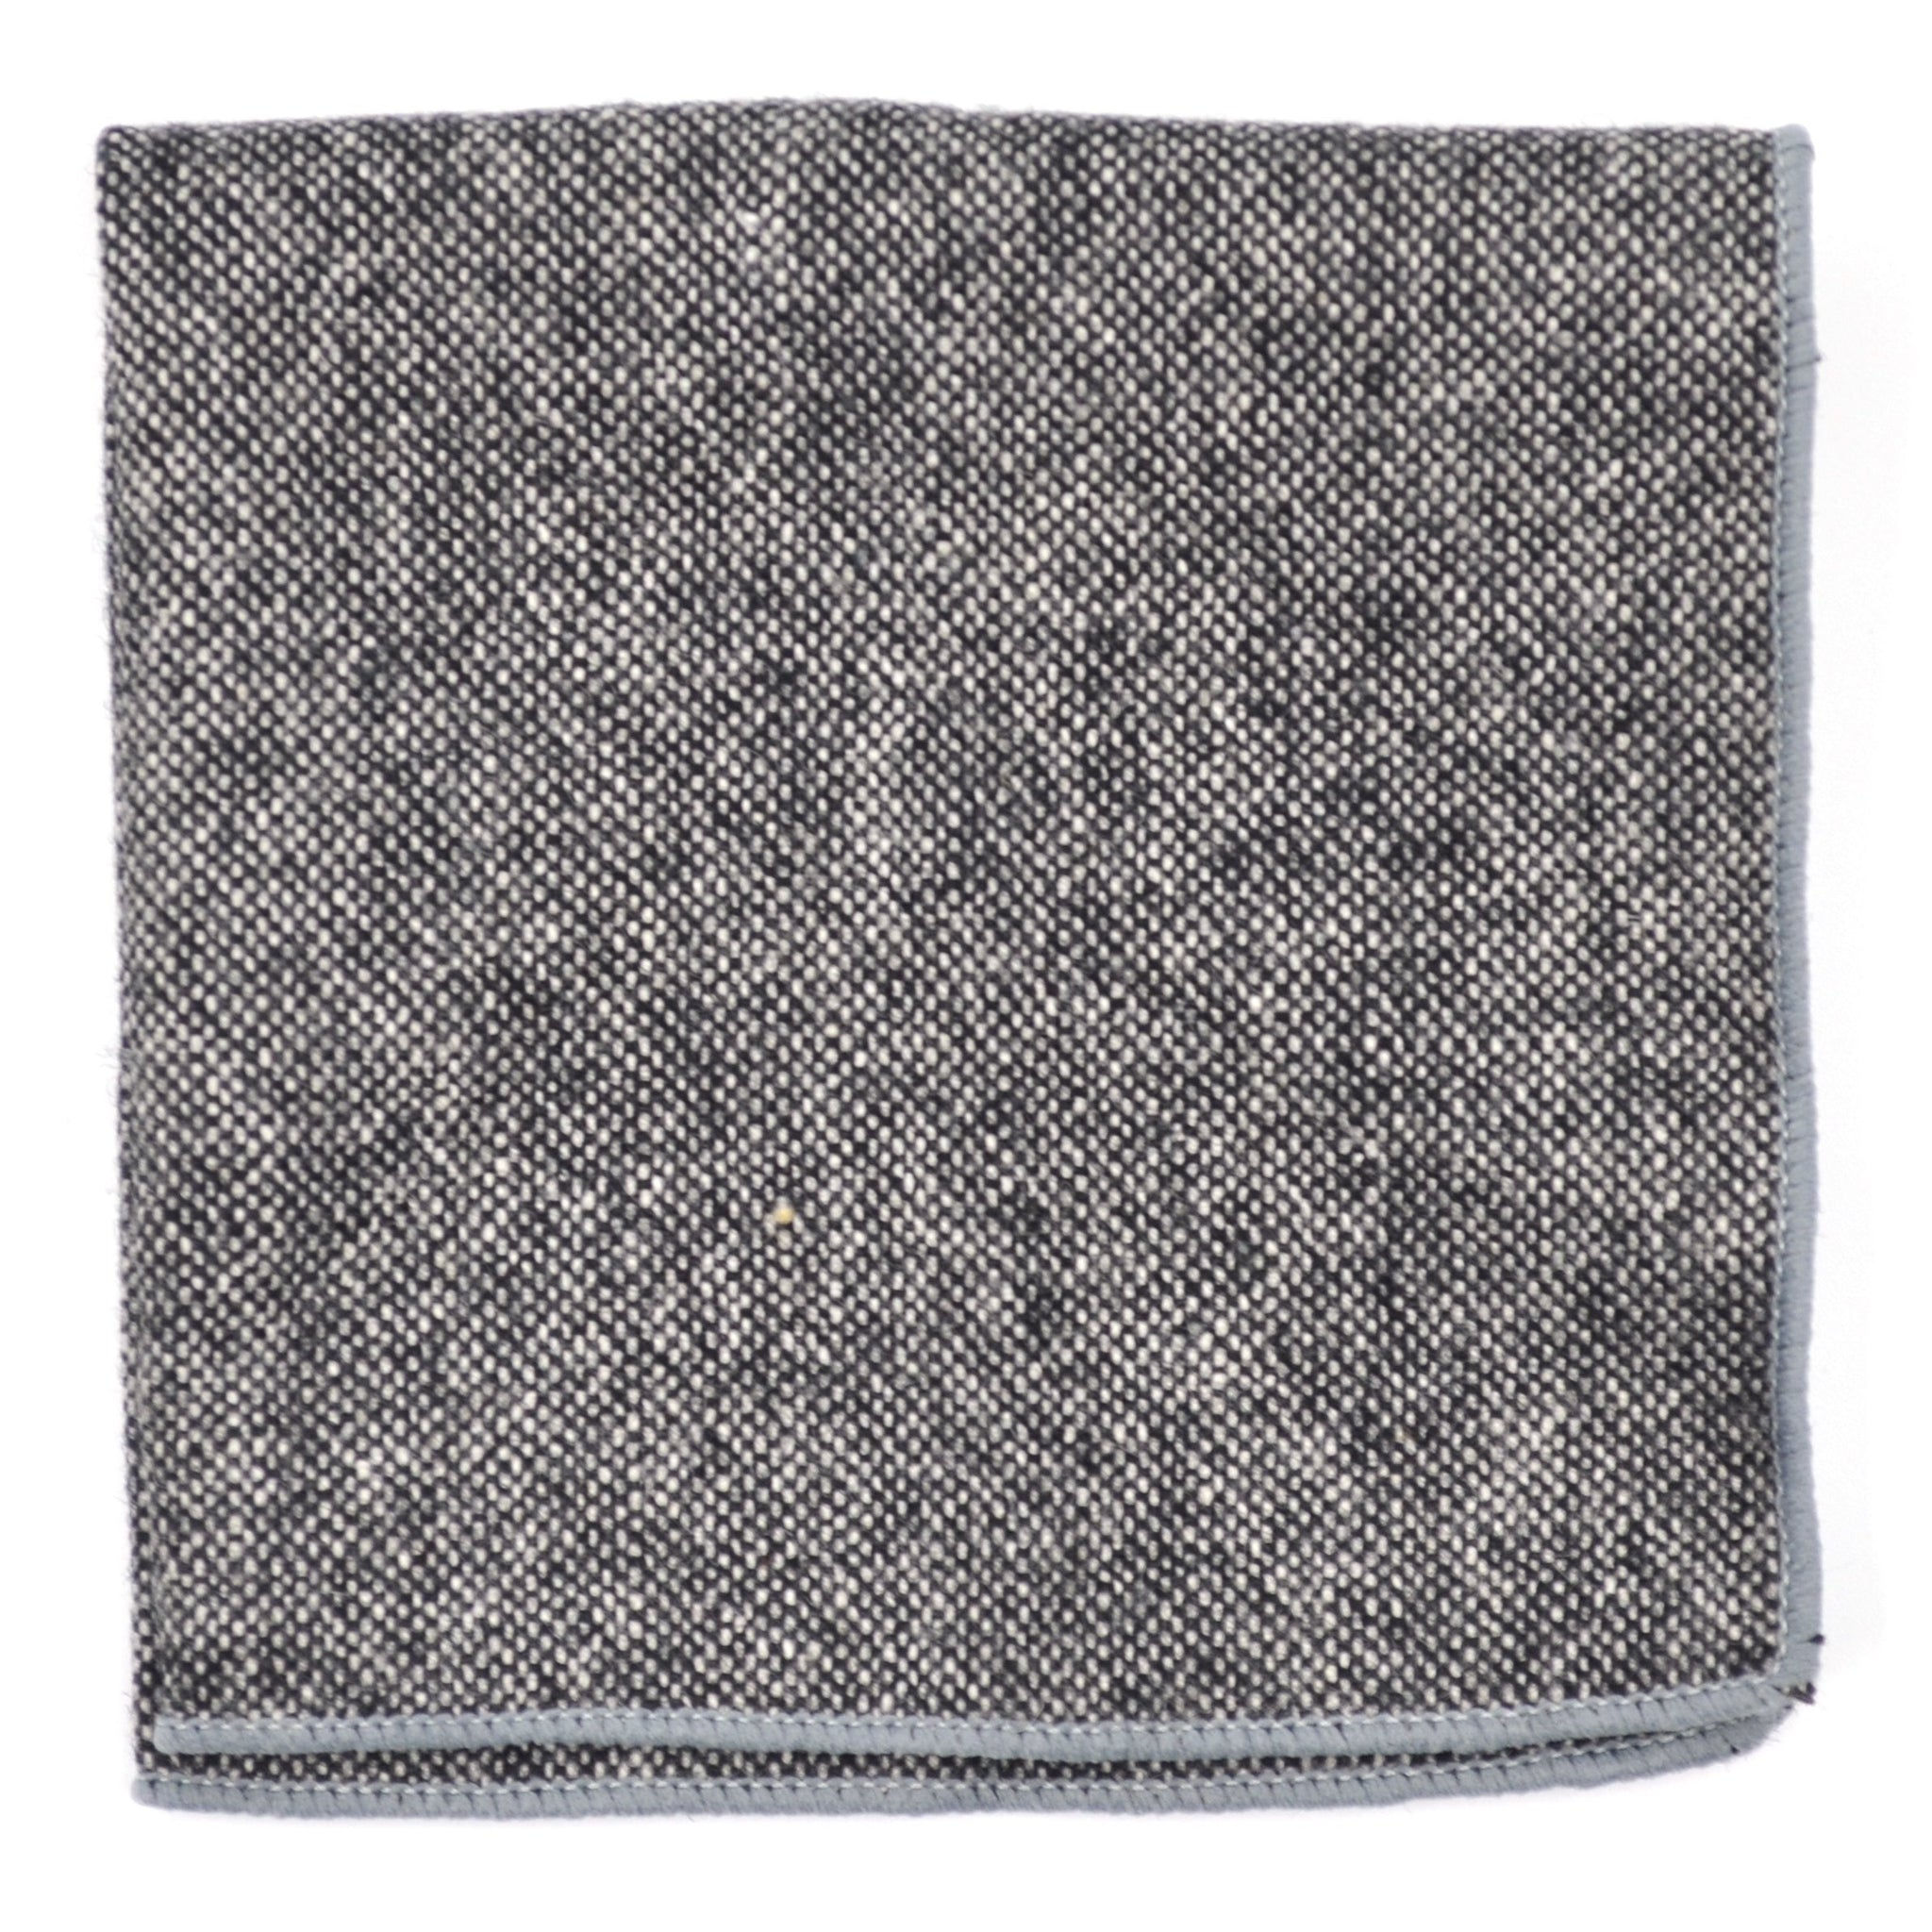 Pocket Square - Pebble Grey Pocket Square